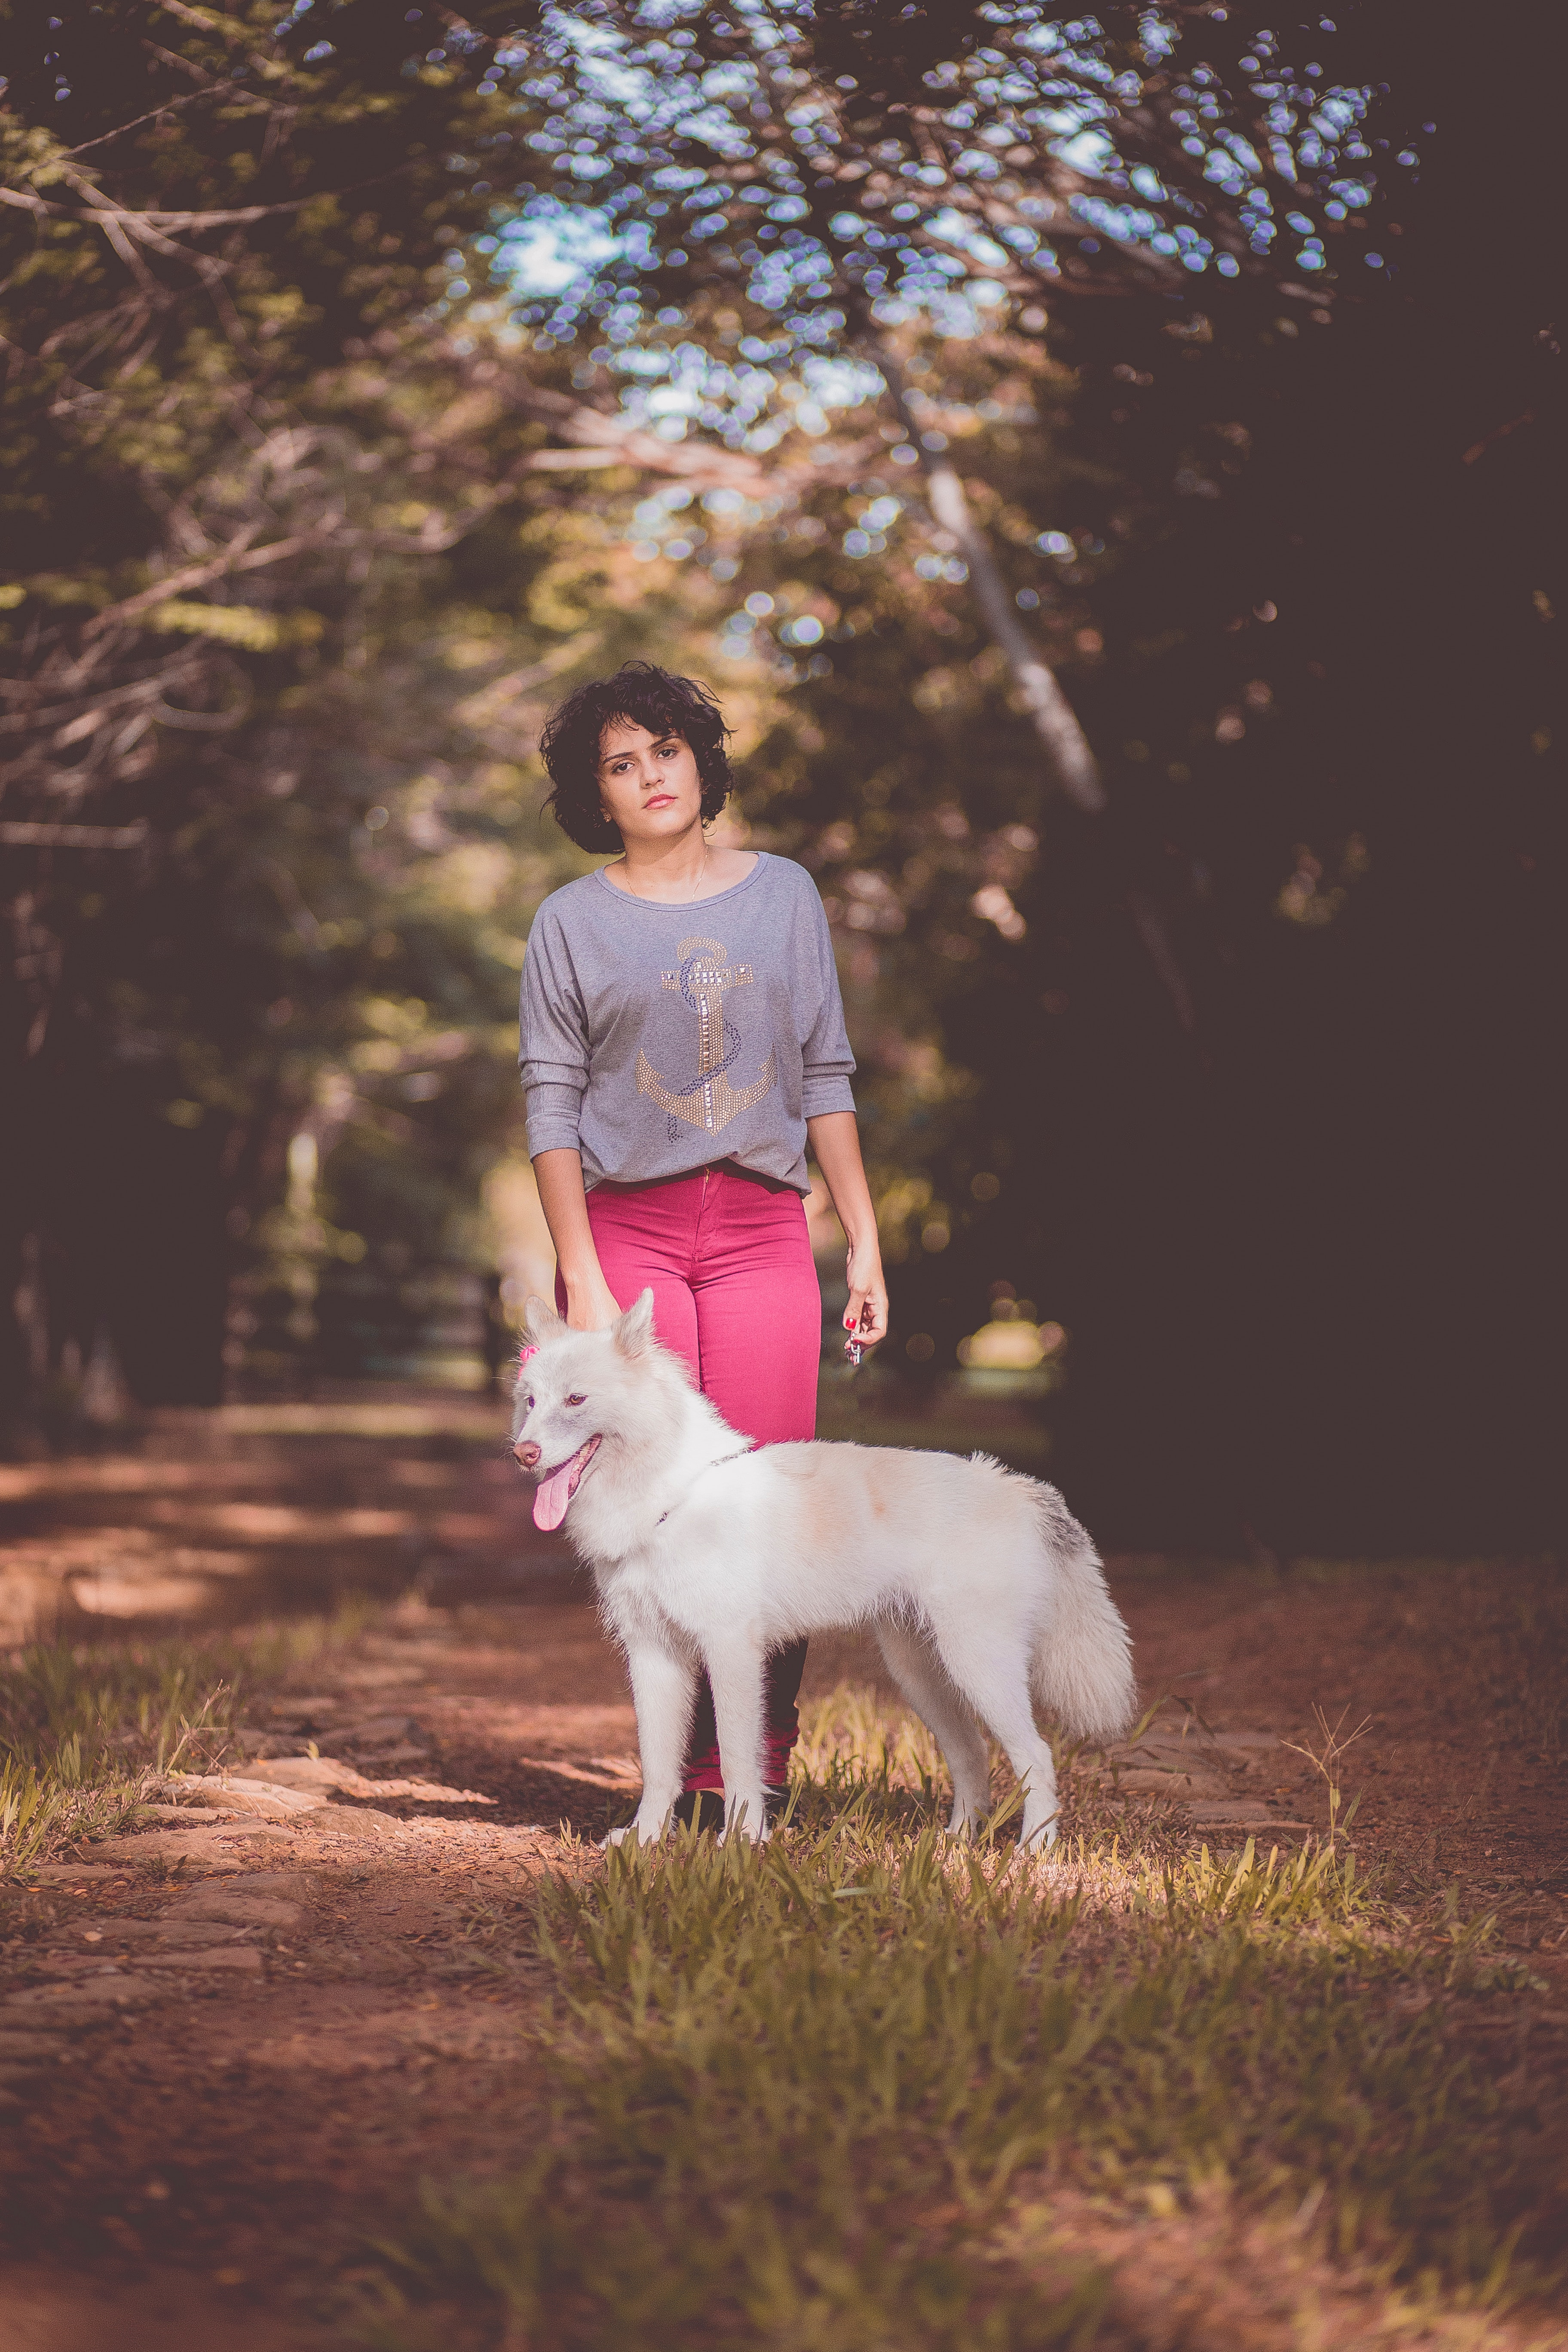 Woman in purple long sleeve shirt and pink jeans standing next to white german spitz with background of green trees during day photo